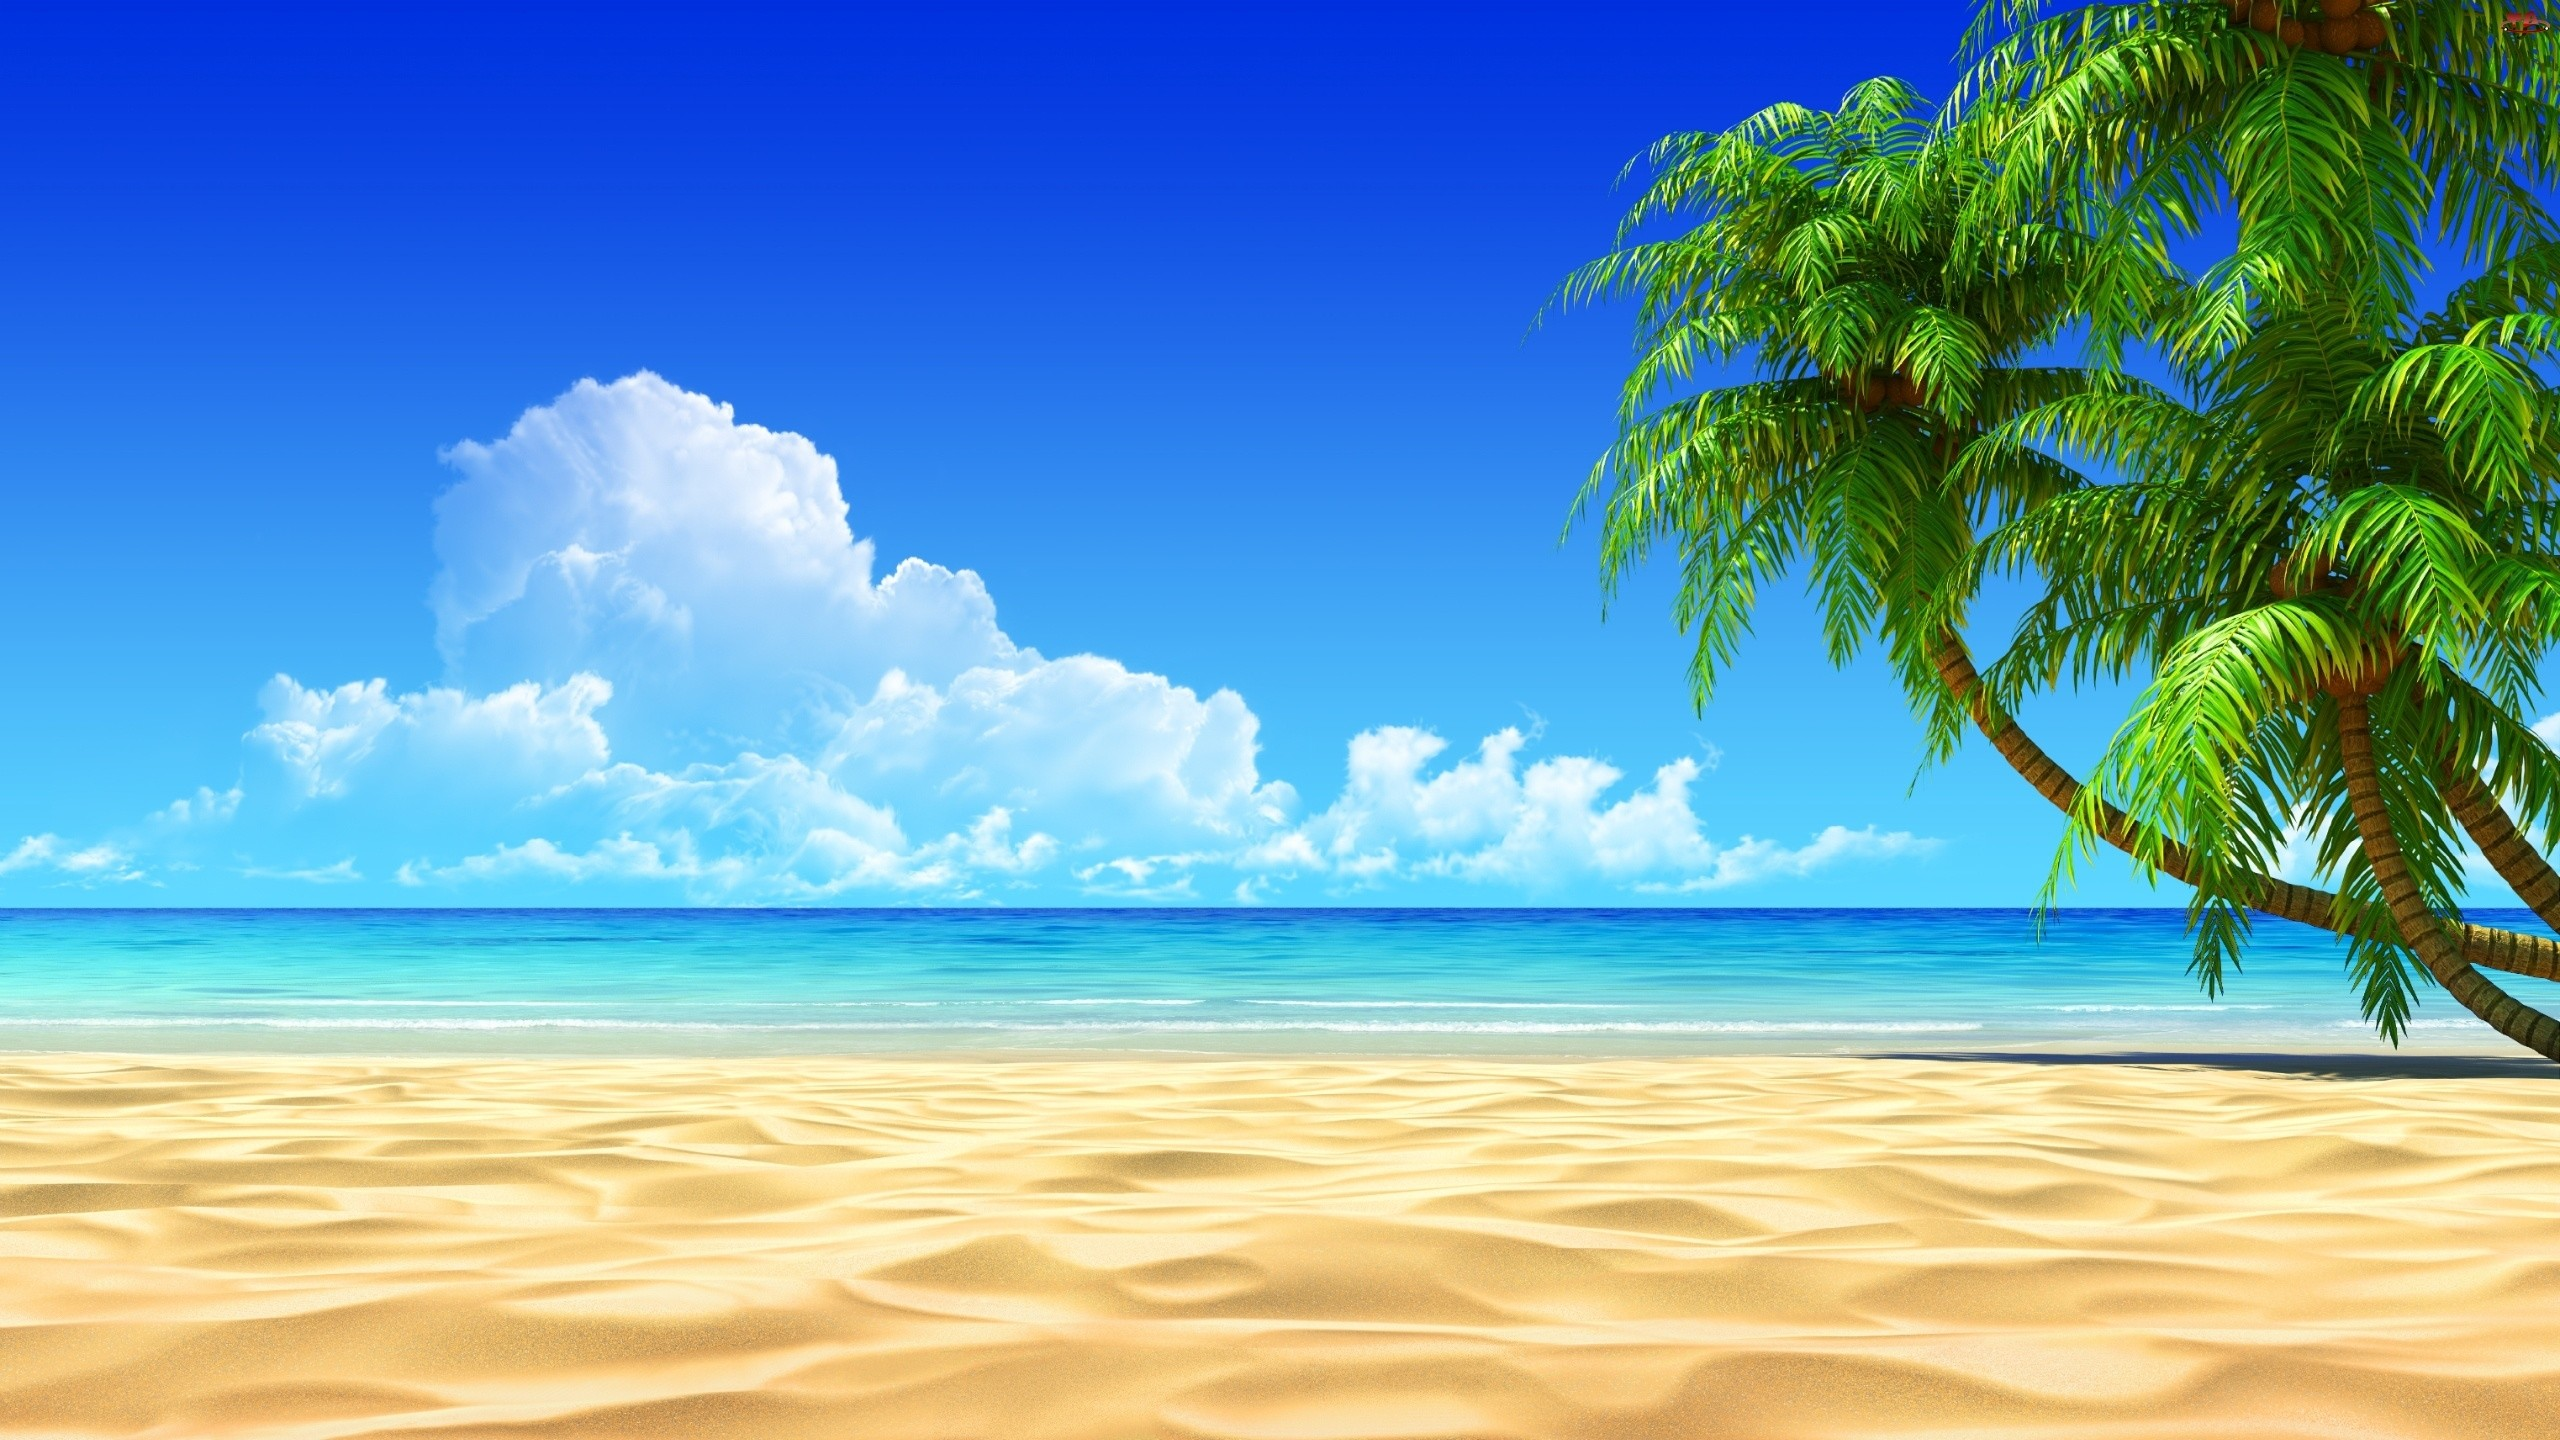 Beach Hd Wallpapers 1080p 68 Images